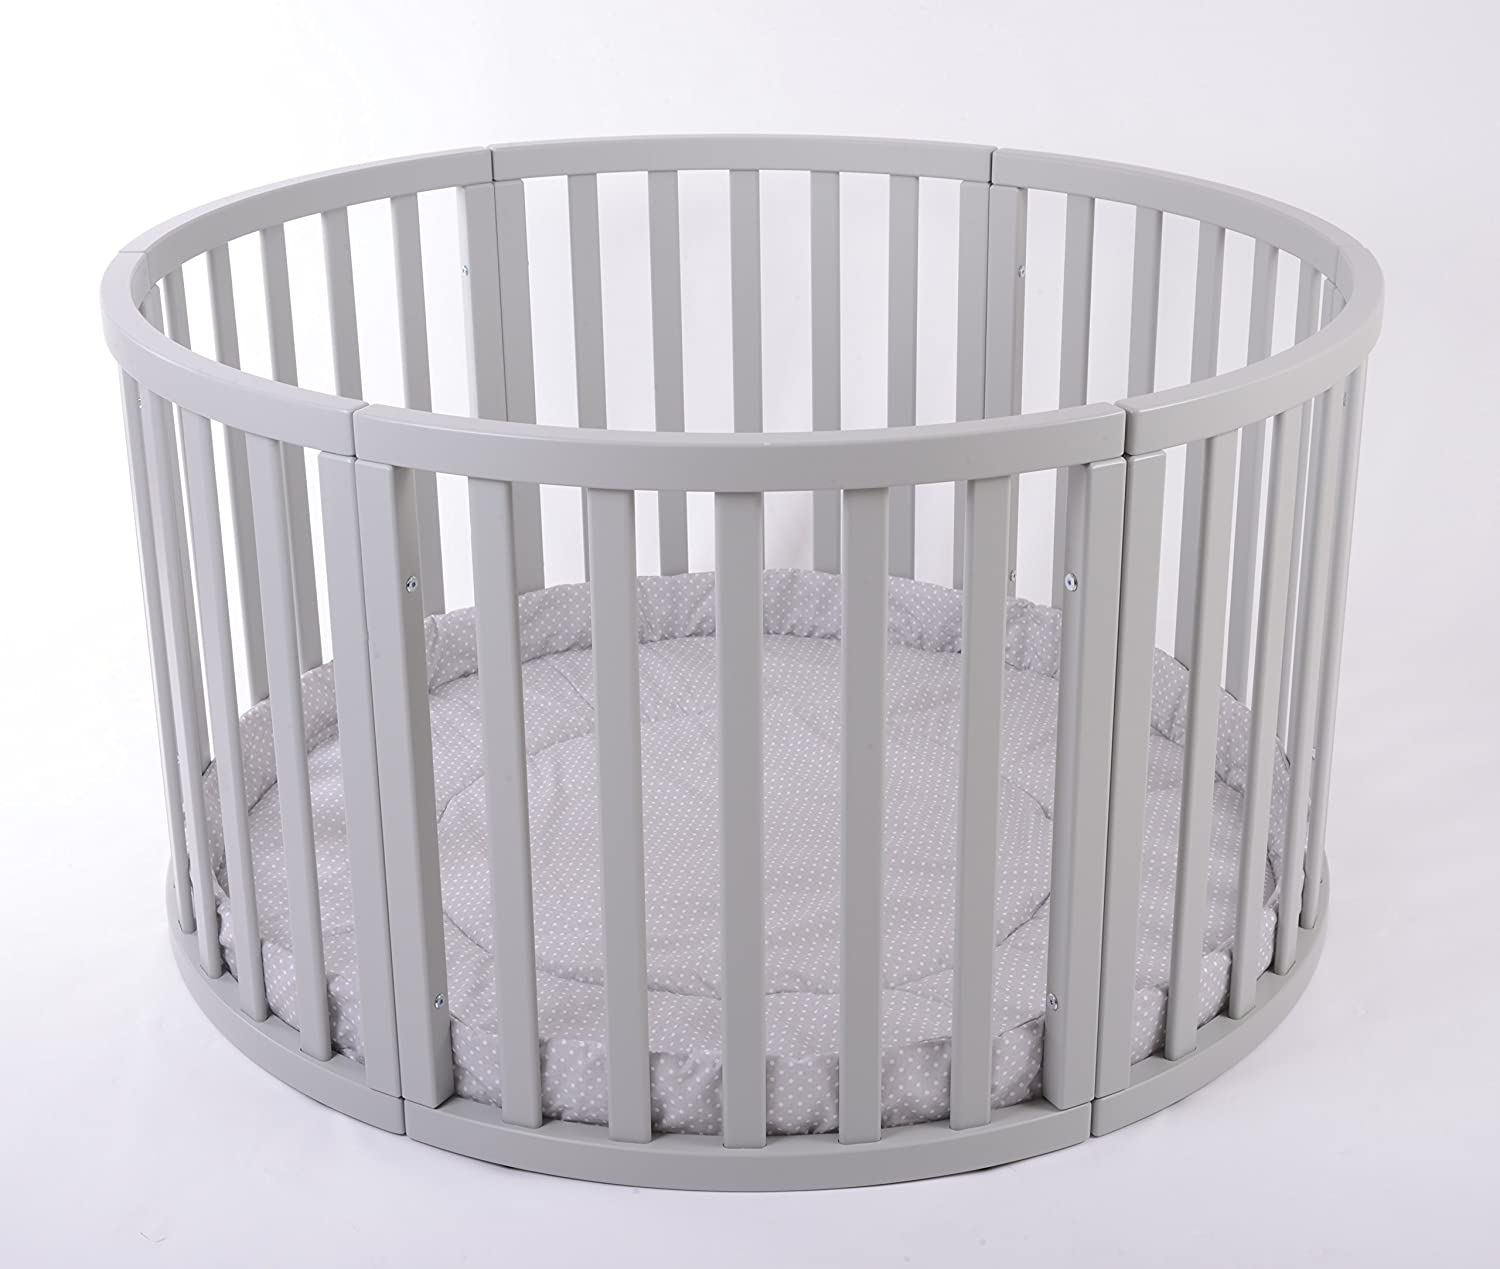 MJmark Round PLAYPEN APOLLO QUATTRO VERY LARGE Wooden playpen with play-mat in Grey with white Polk Dots SALE SALE